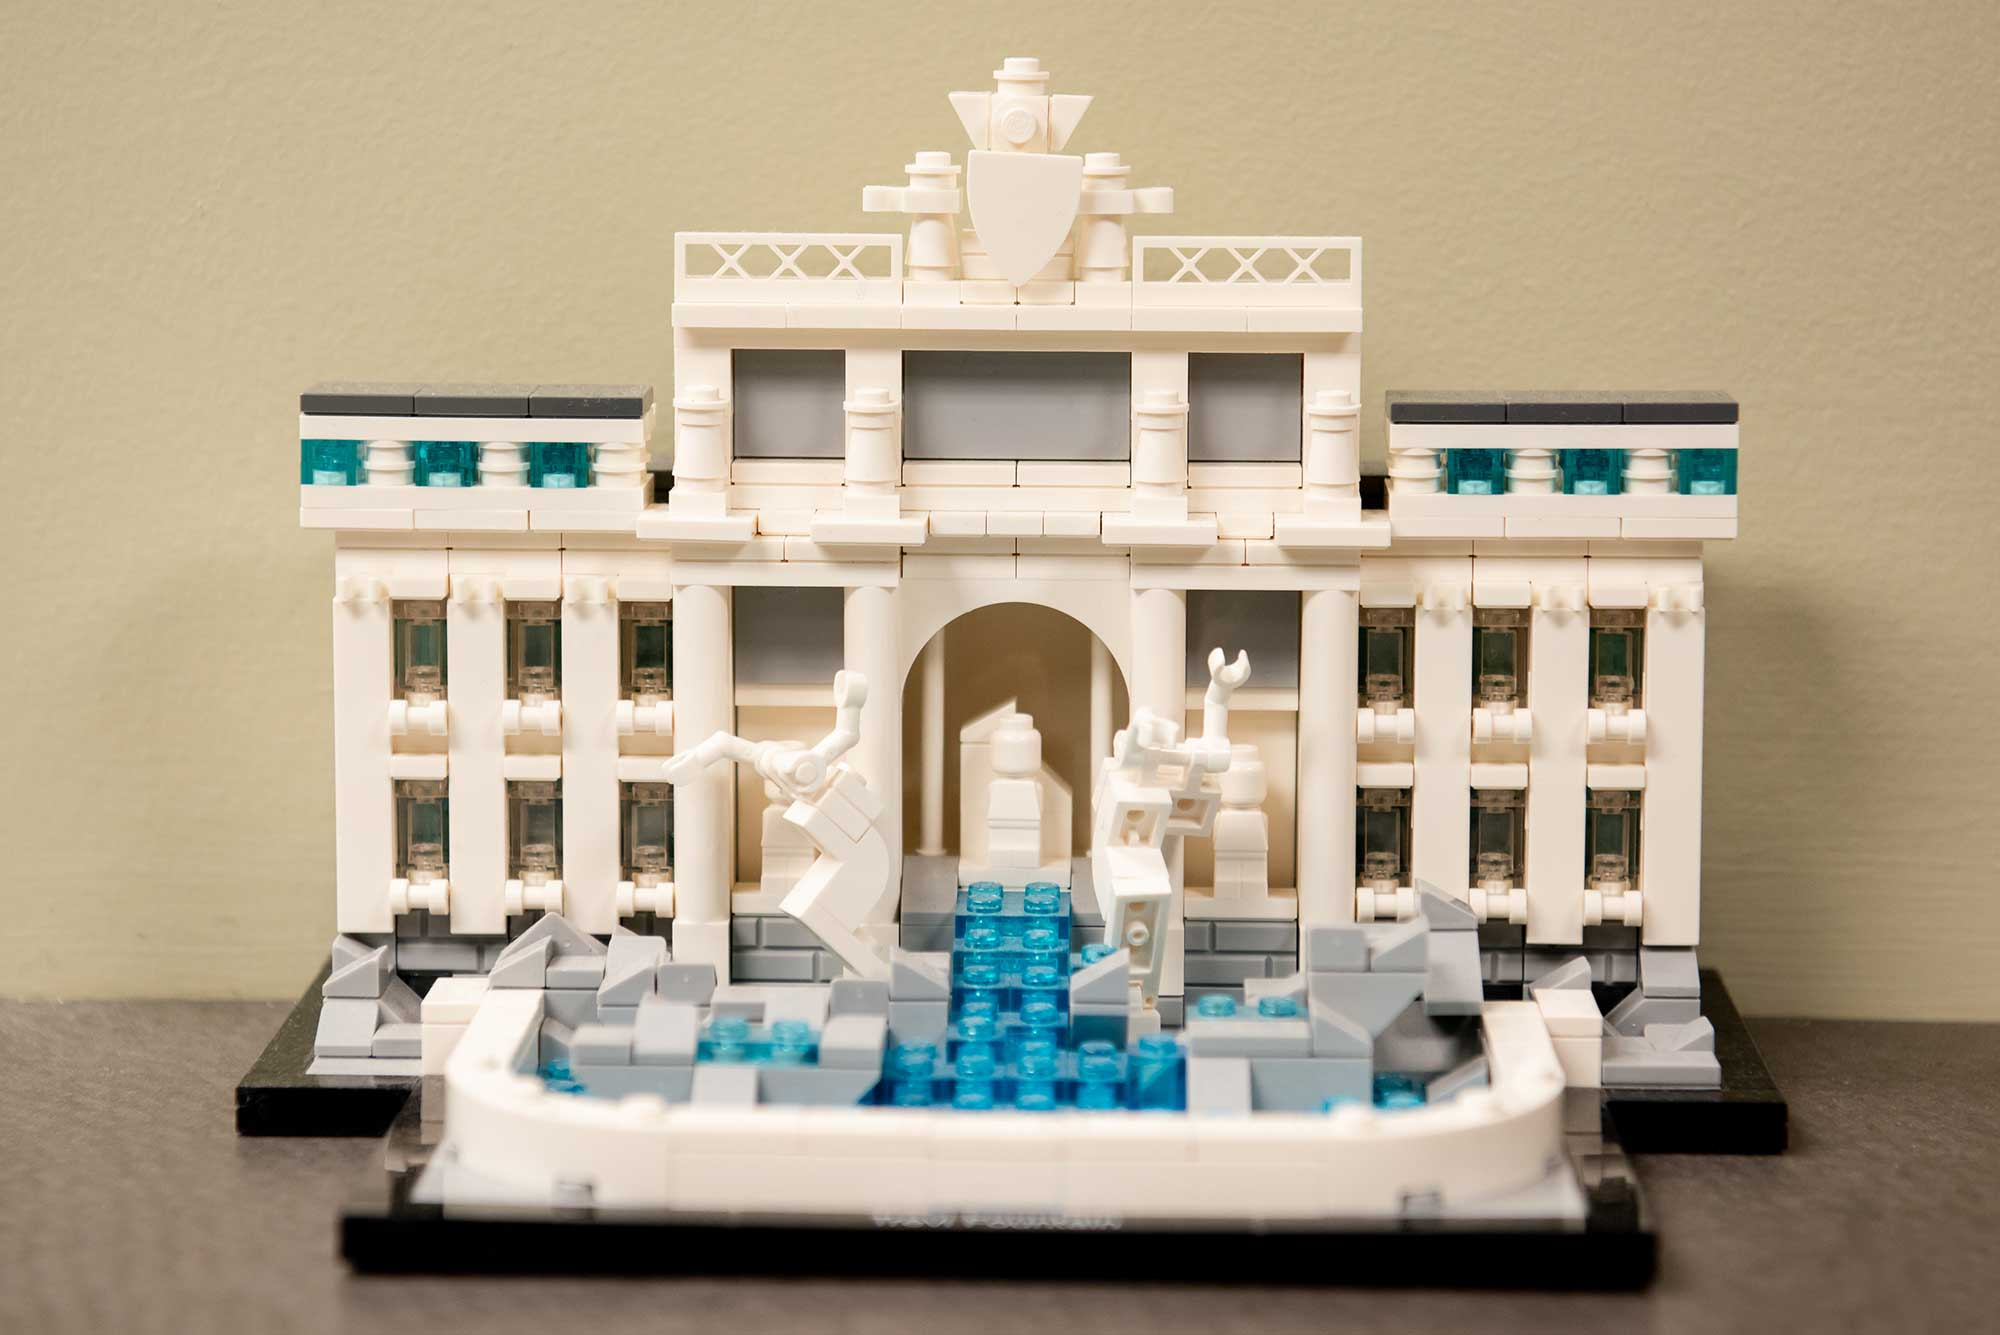 Lego Trevi Fountain at the front desk